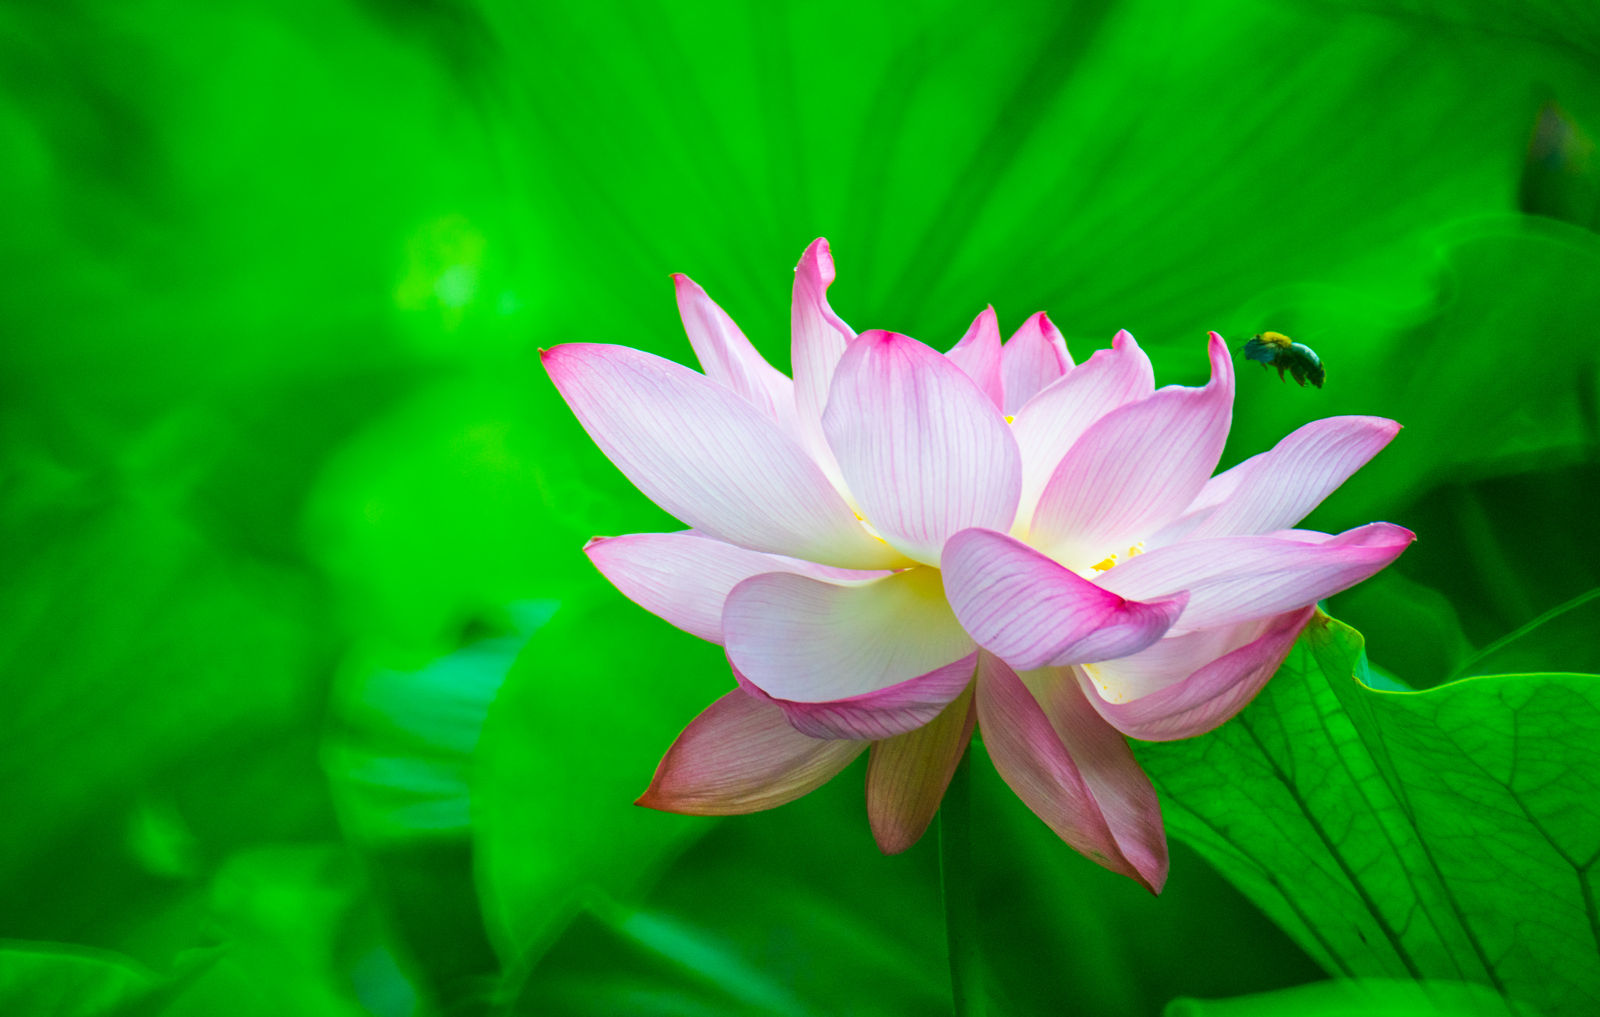 lotus flower wallpaper hd by aotaro